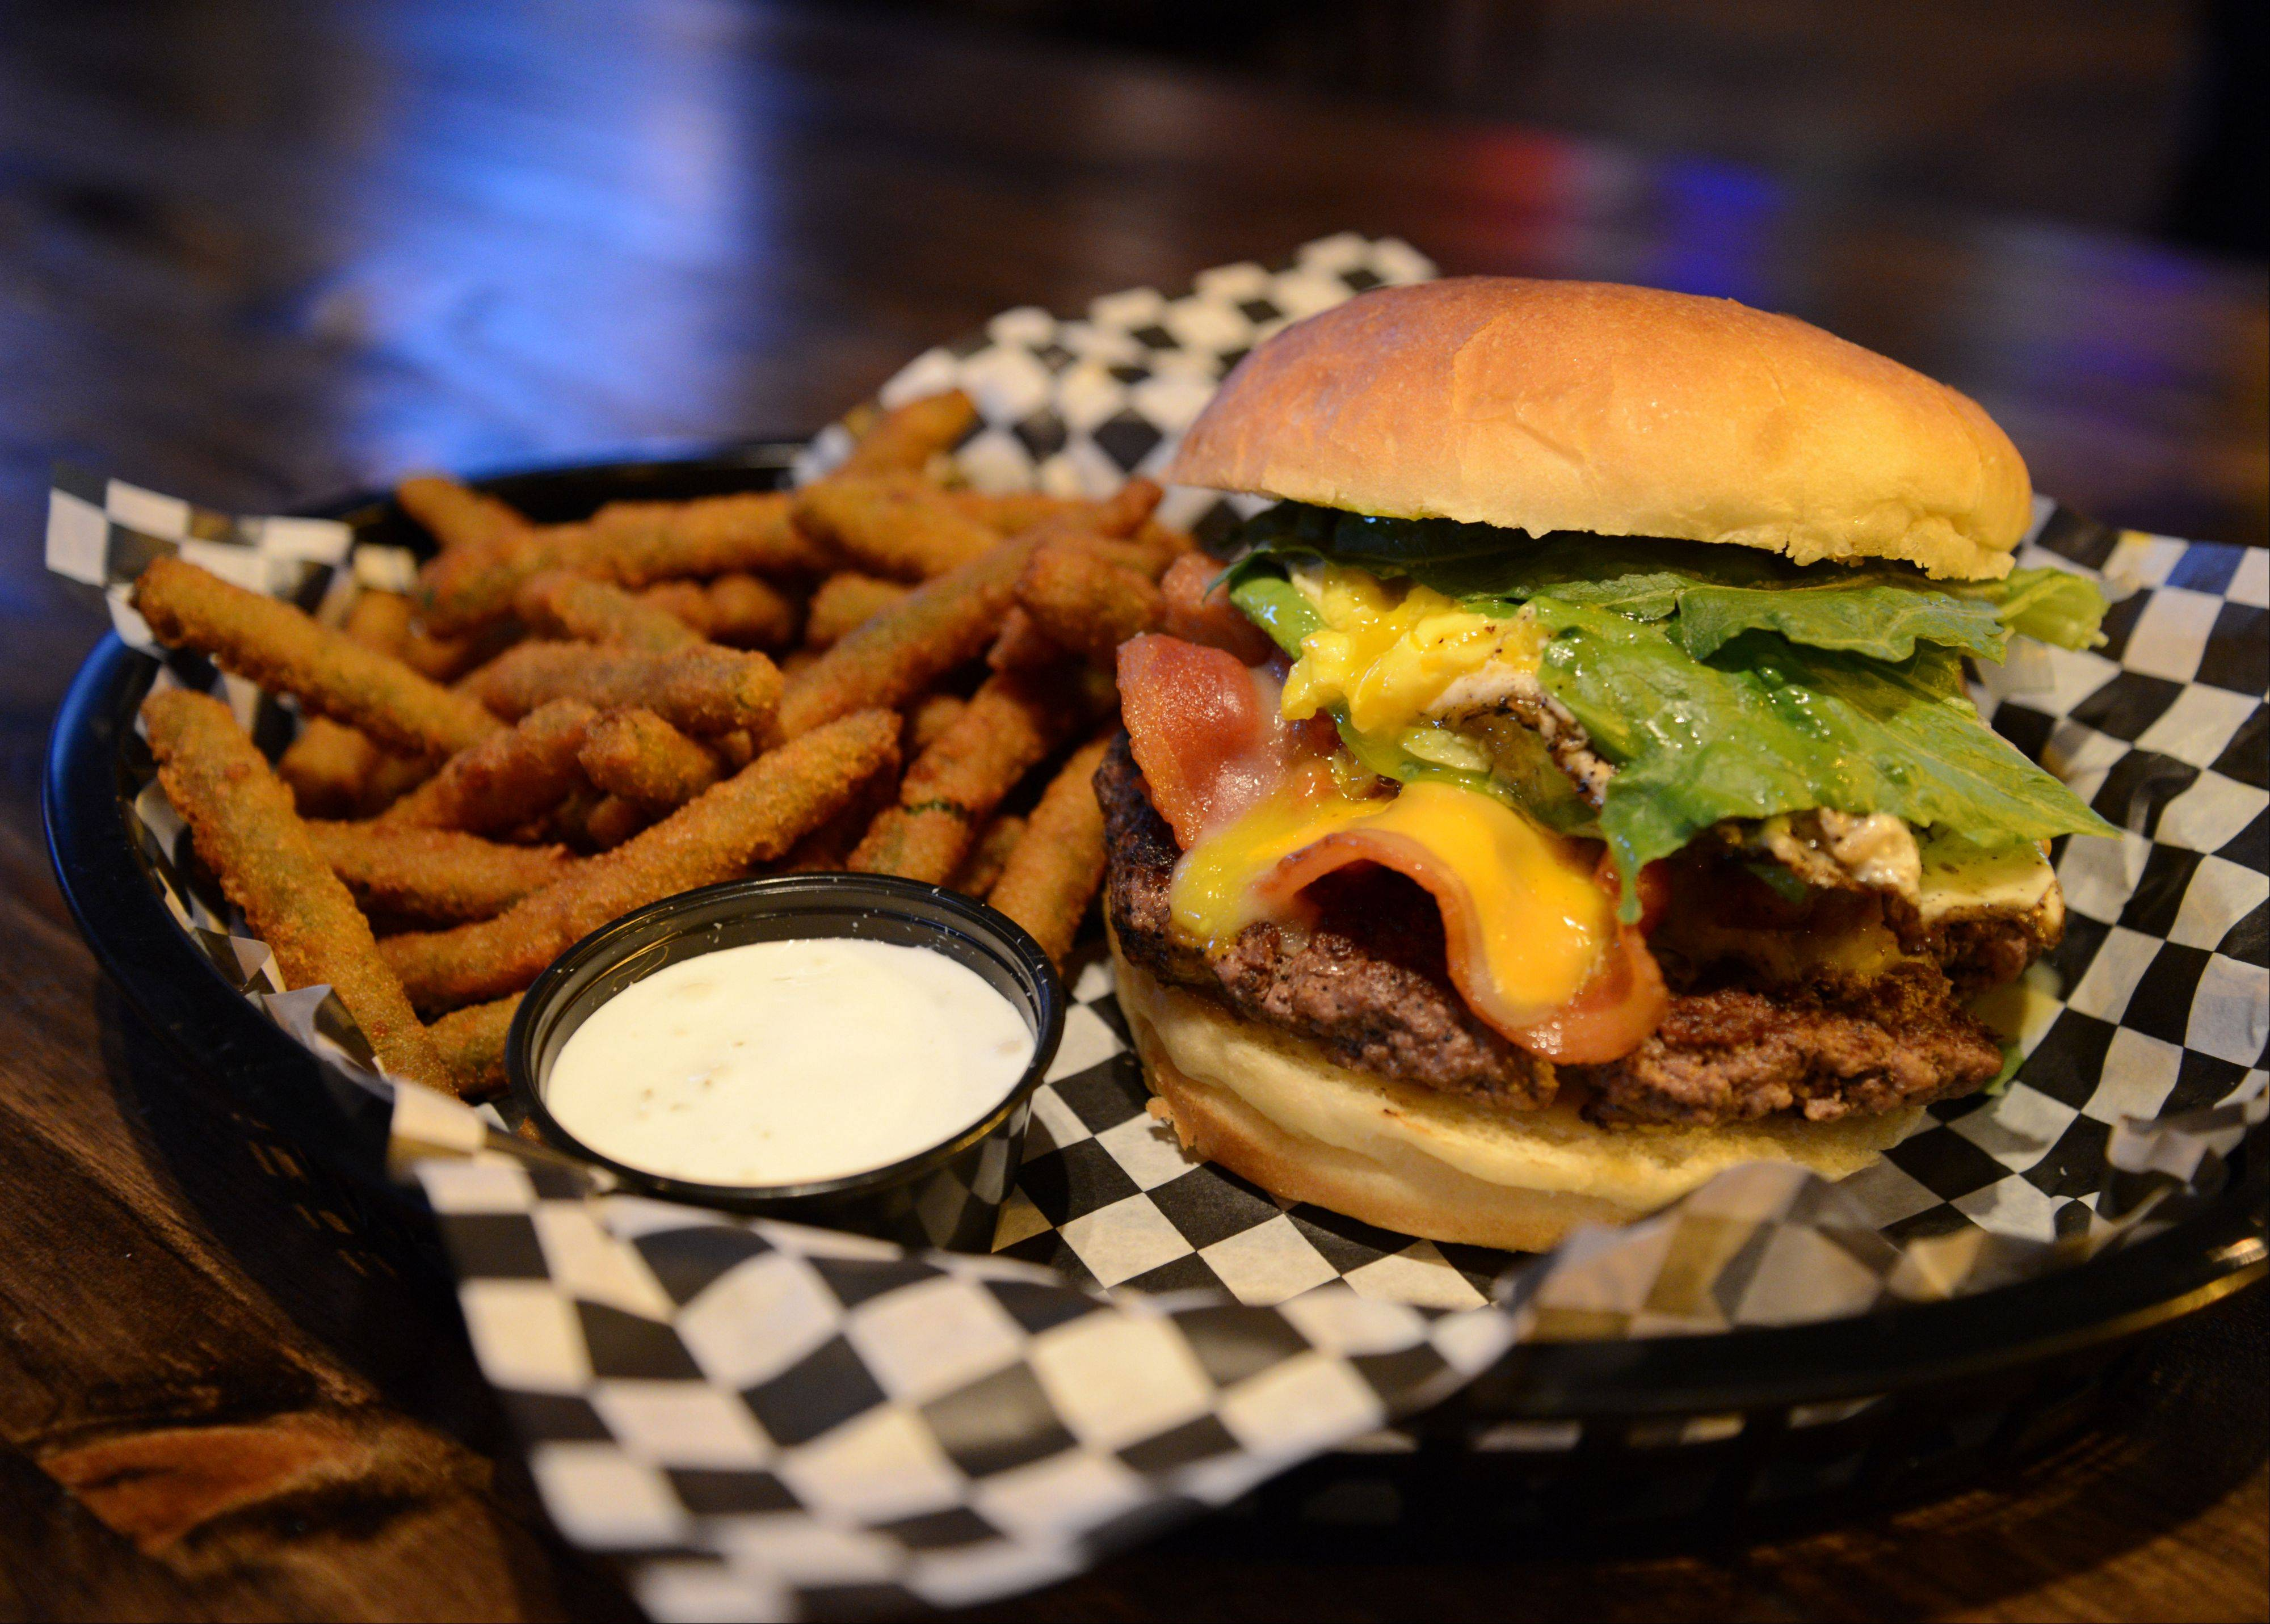 Midcity Cocktails & Supper Club offers custom burgers.